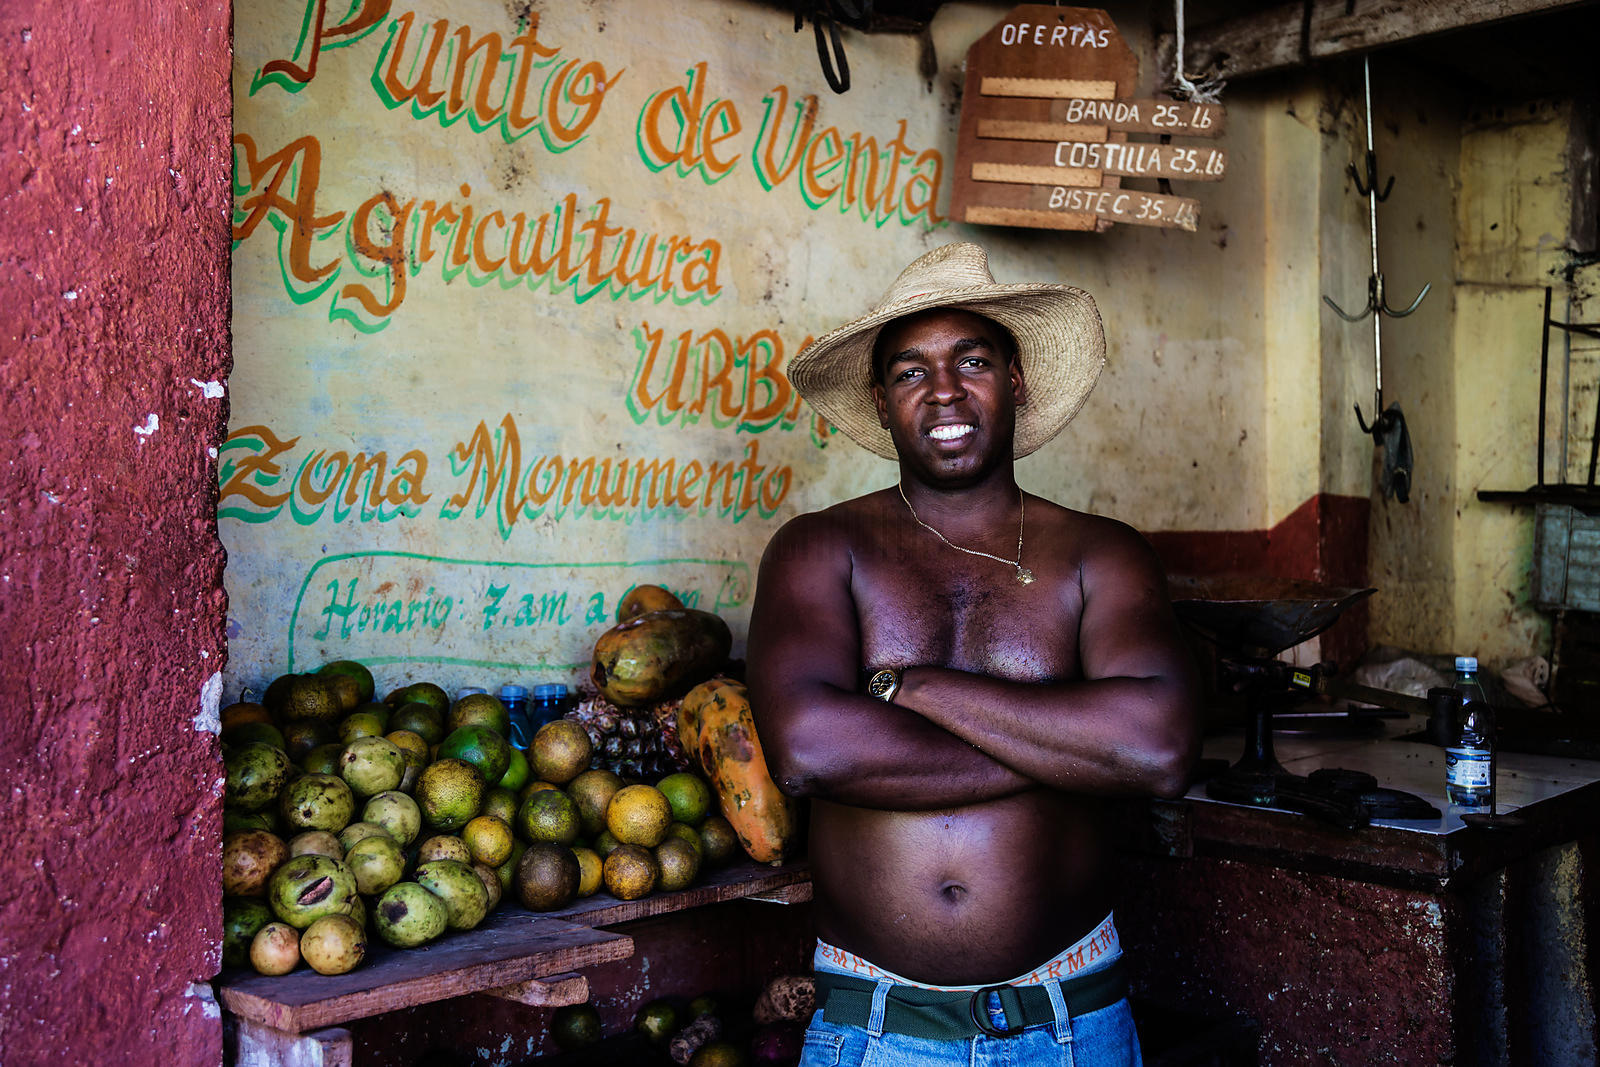 Portrait of a Fruit Seller in his Store